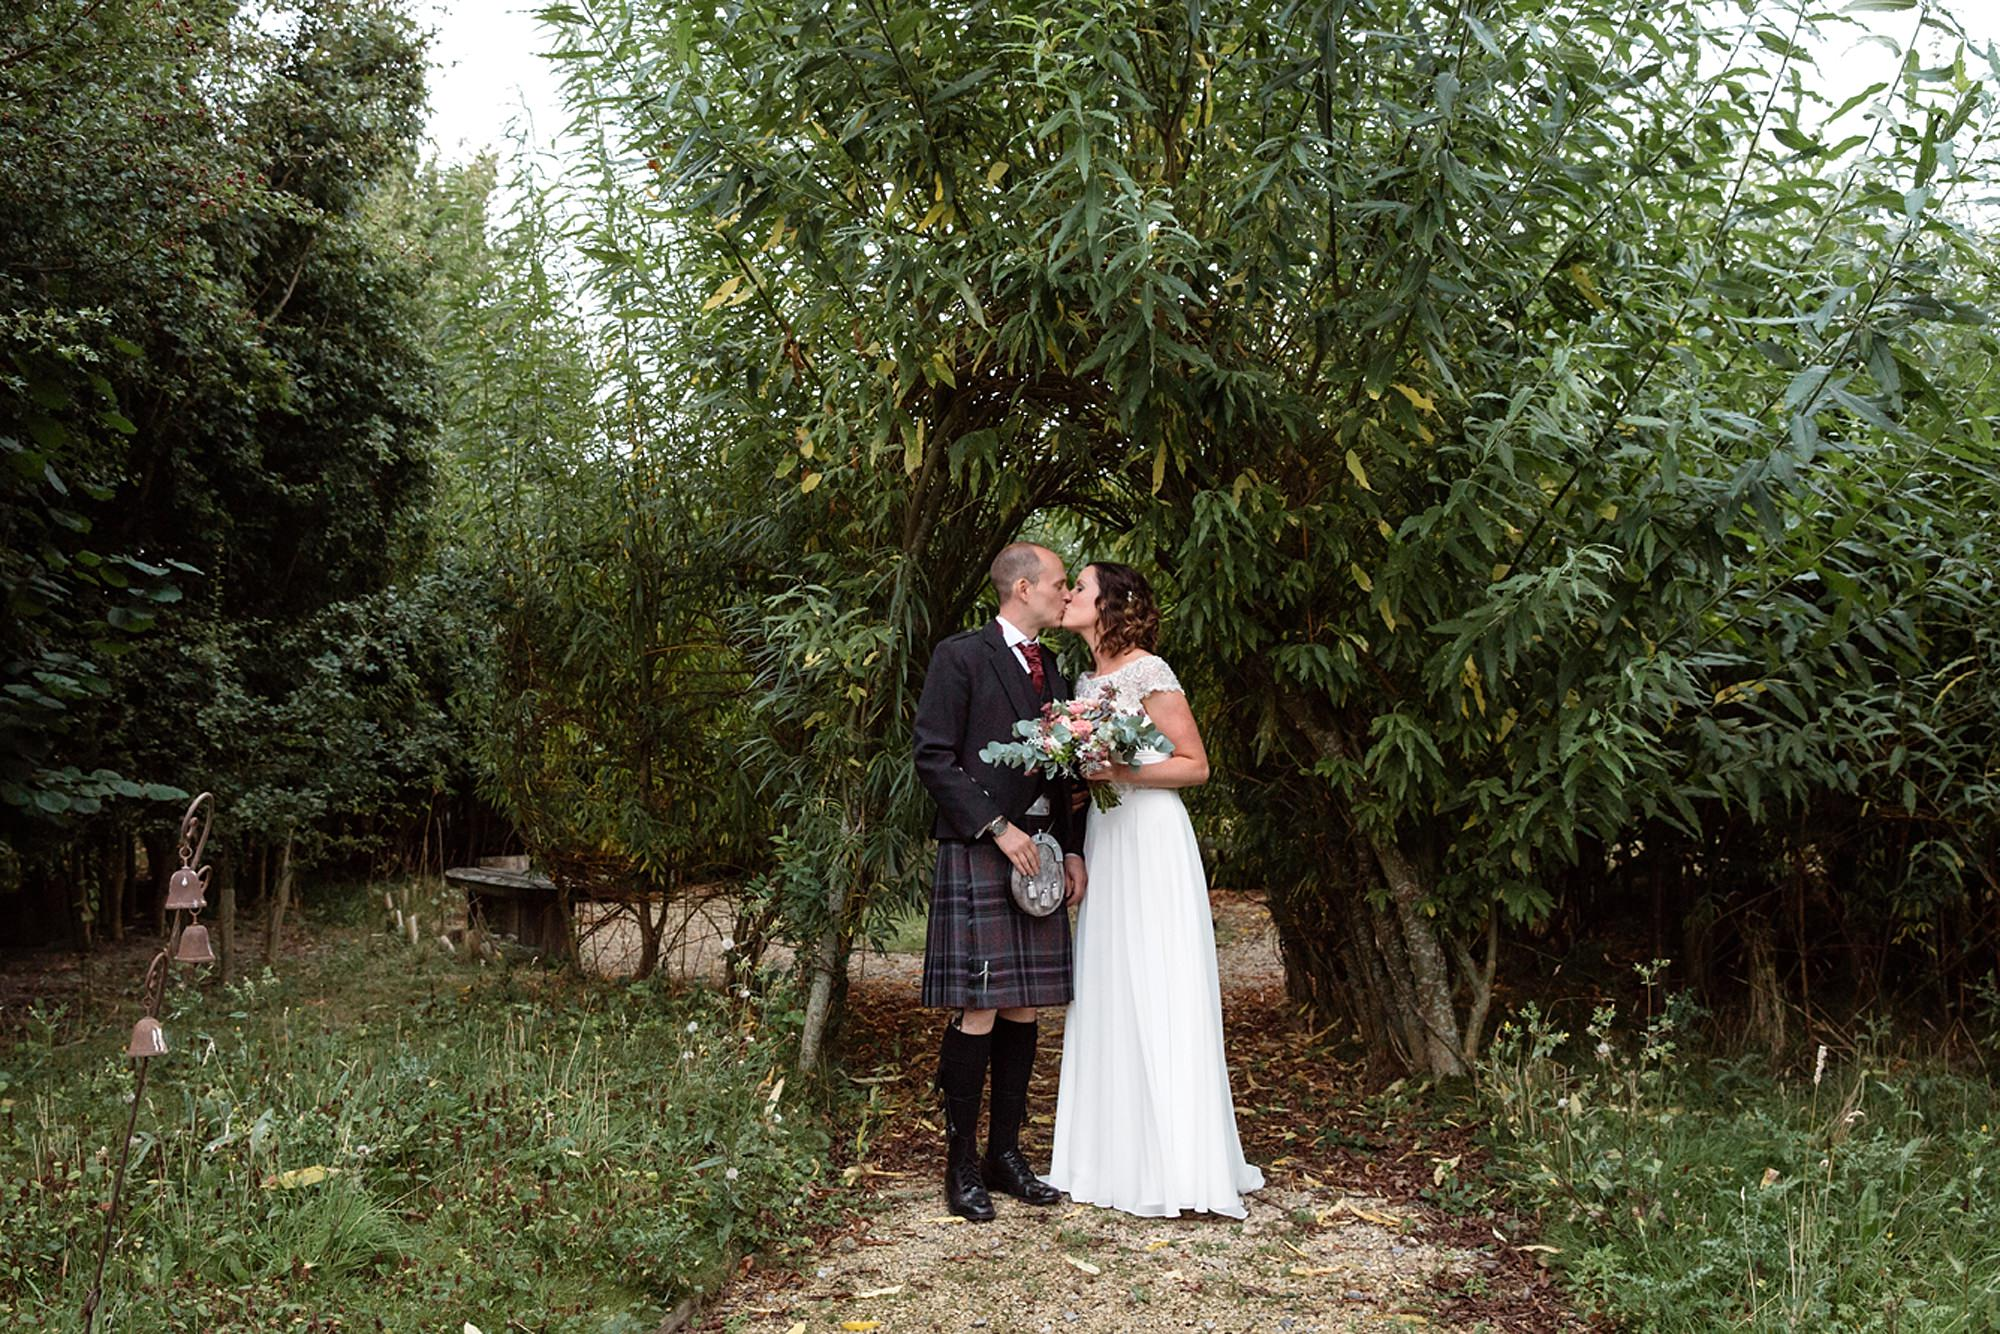 outdoor humanist wedding photography bride and groom kiss under tree structure